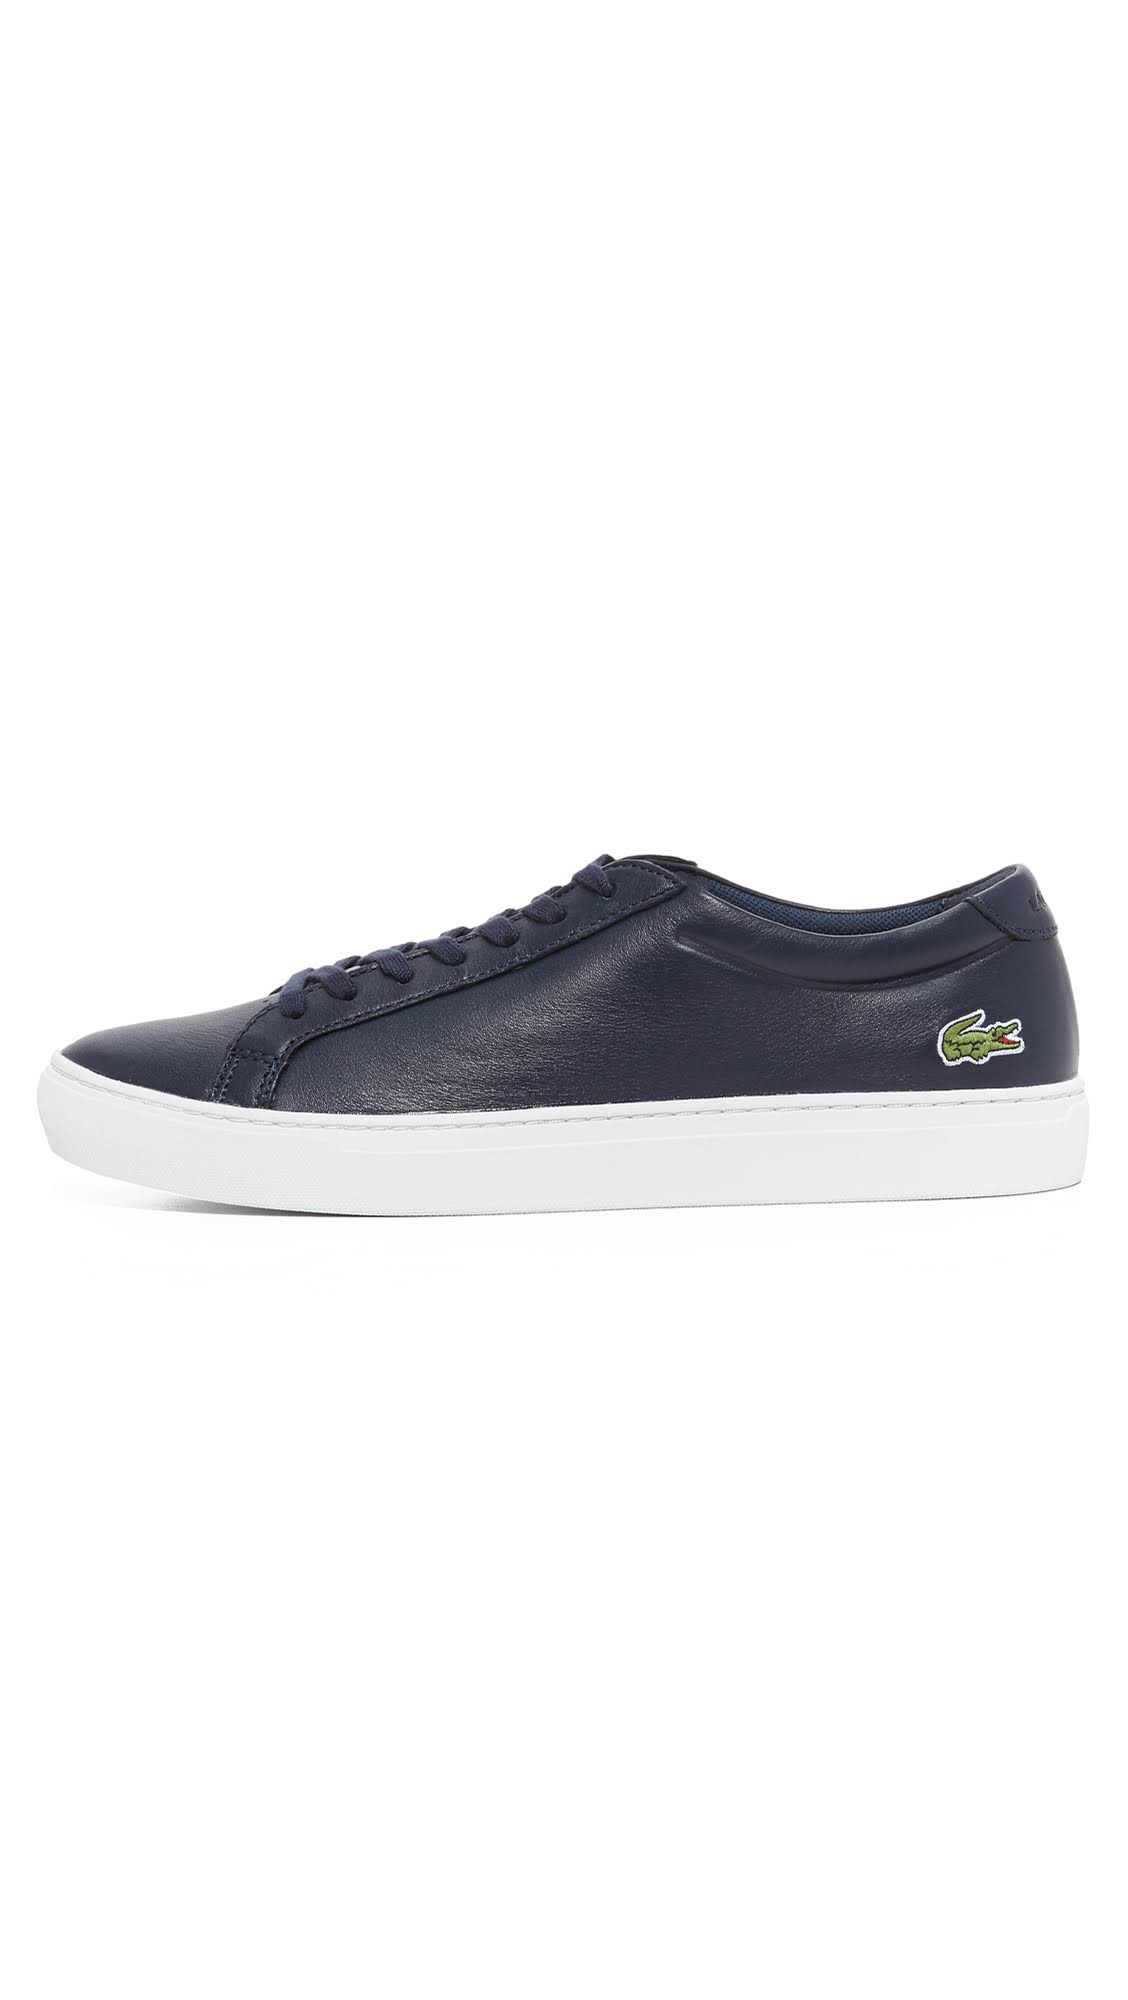 Lacoste-Men-039-s-L-12-12-116-1-Fashion-Sneaker-Navy-Leather-Lace-Up-Sneakers thumbnail 3